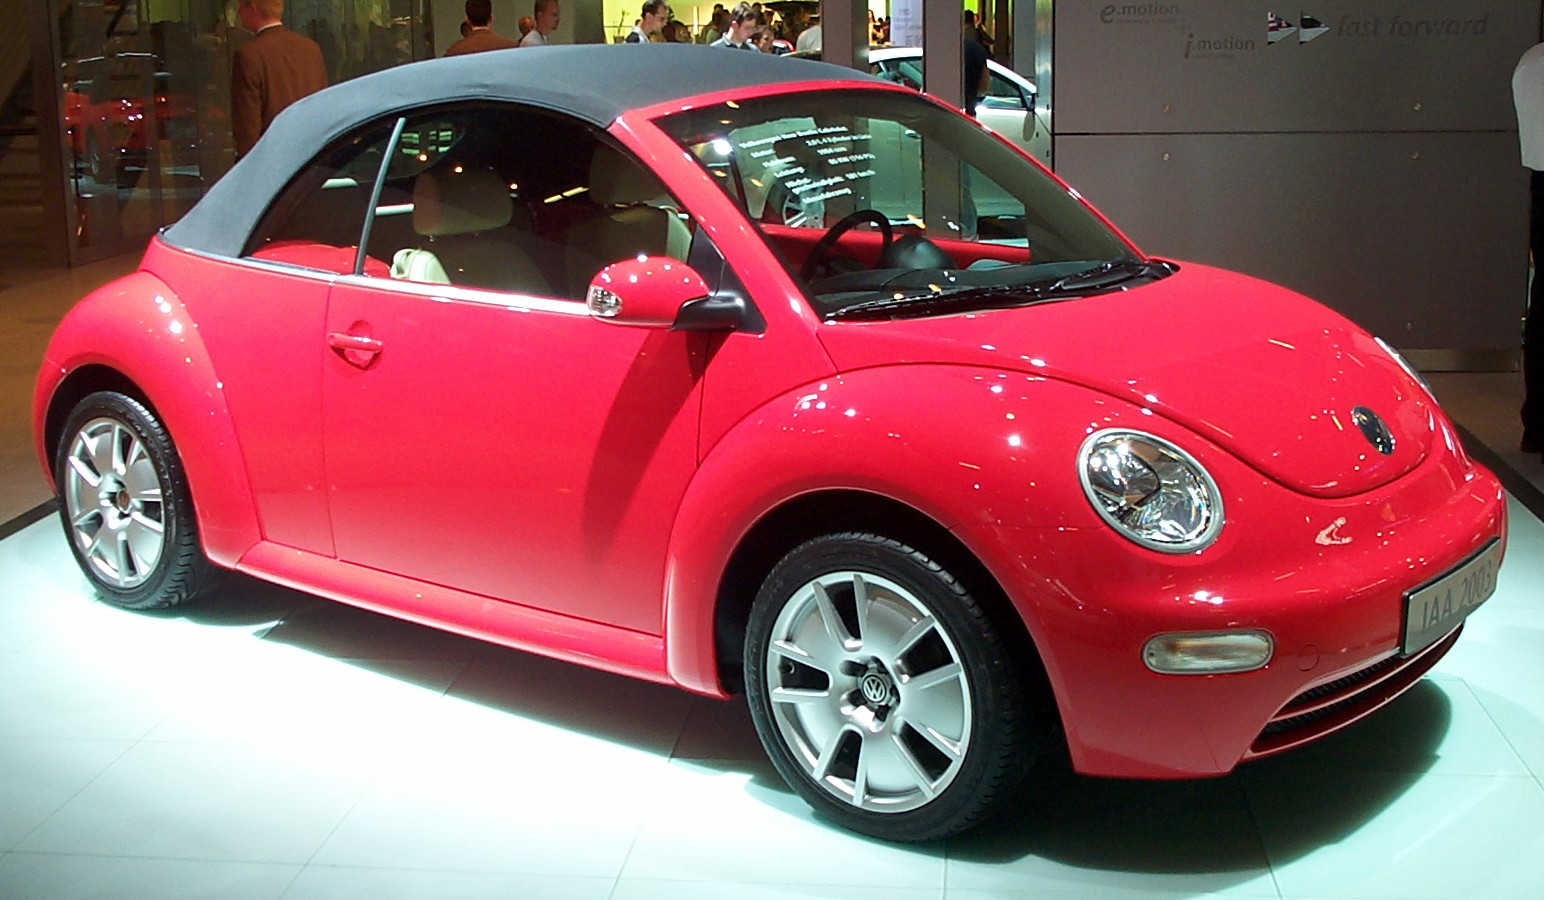 Volkswagen Beetle 2000 photo - 3